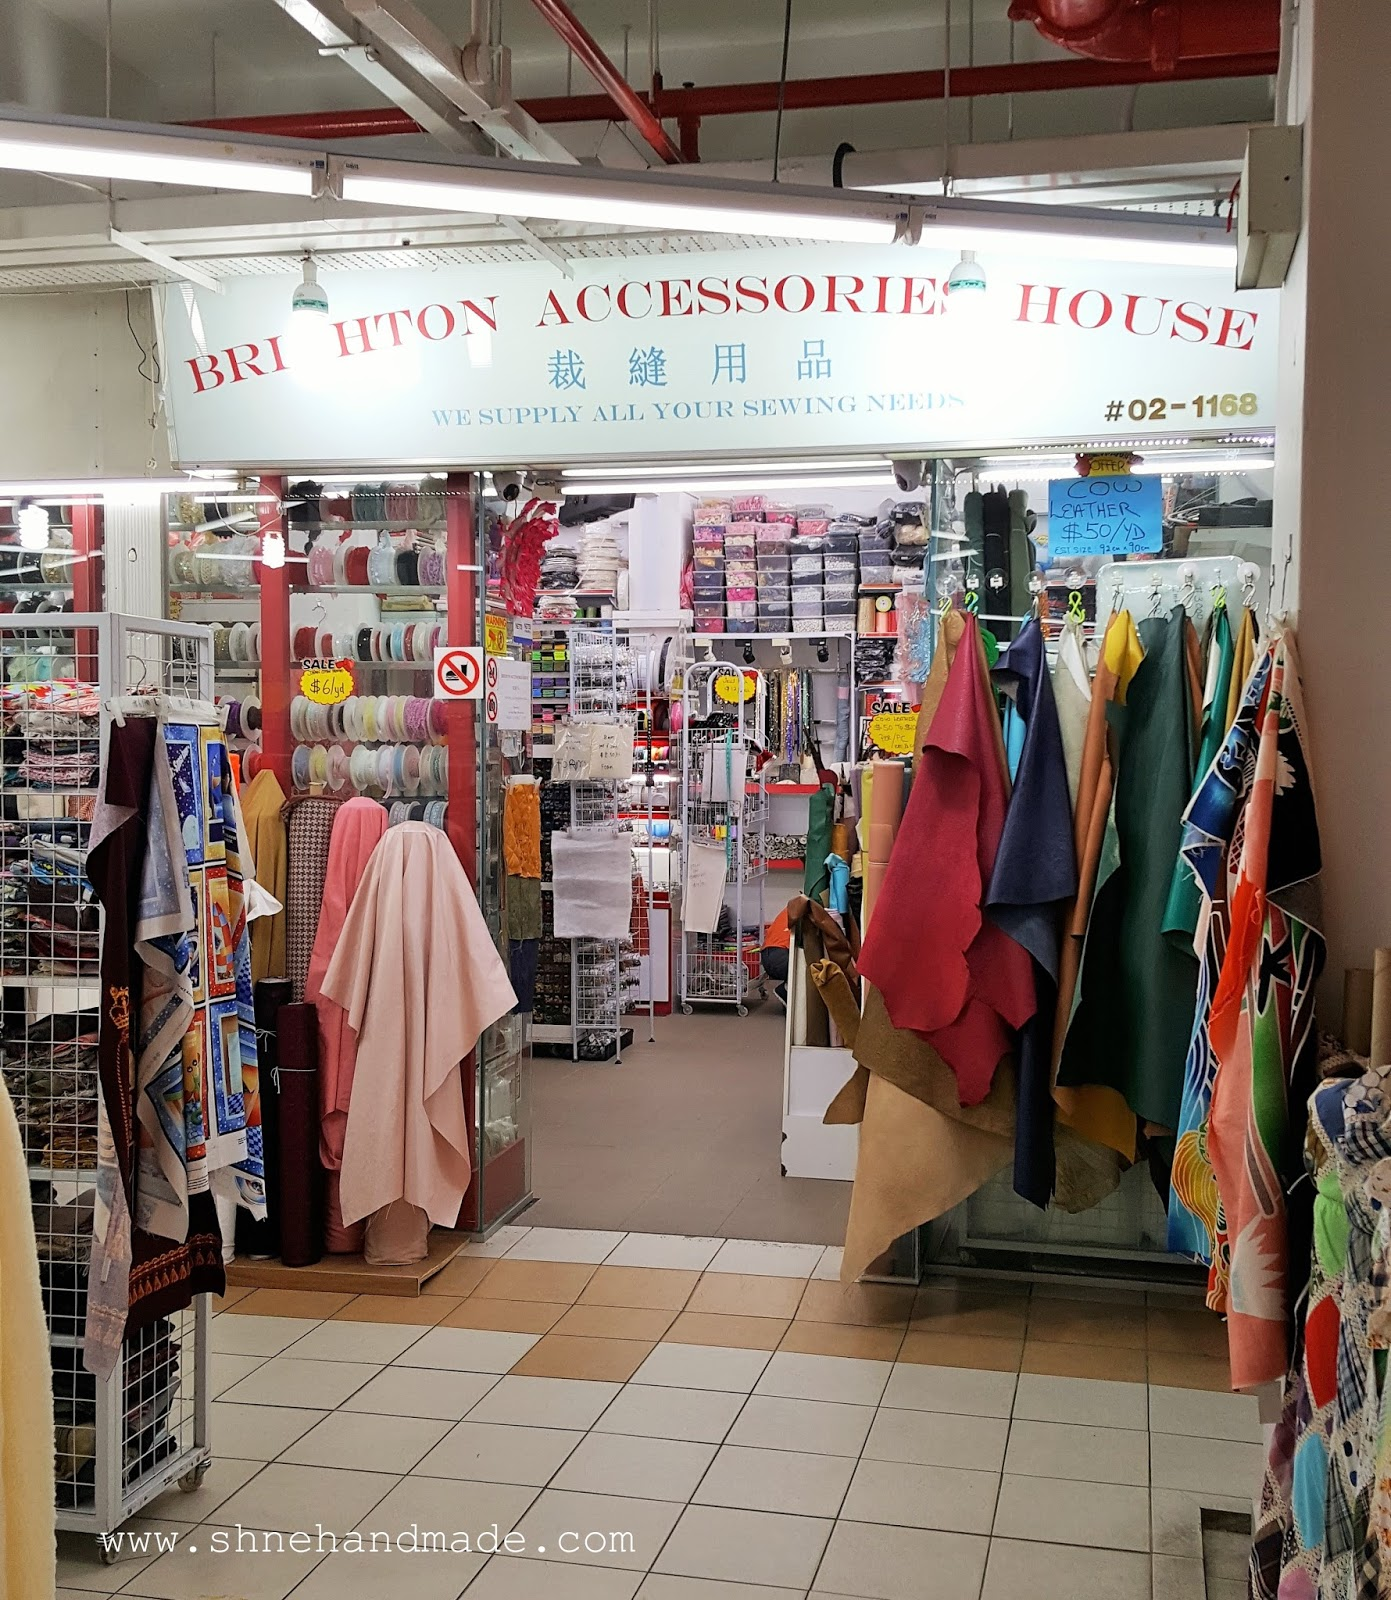 Shané Handmade: Fabric Hunts / Sewing Supplies in Singapore